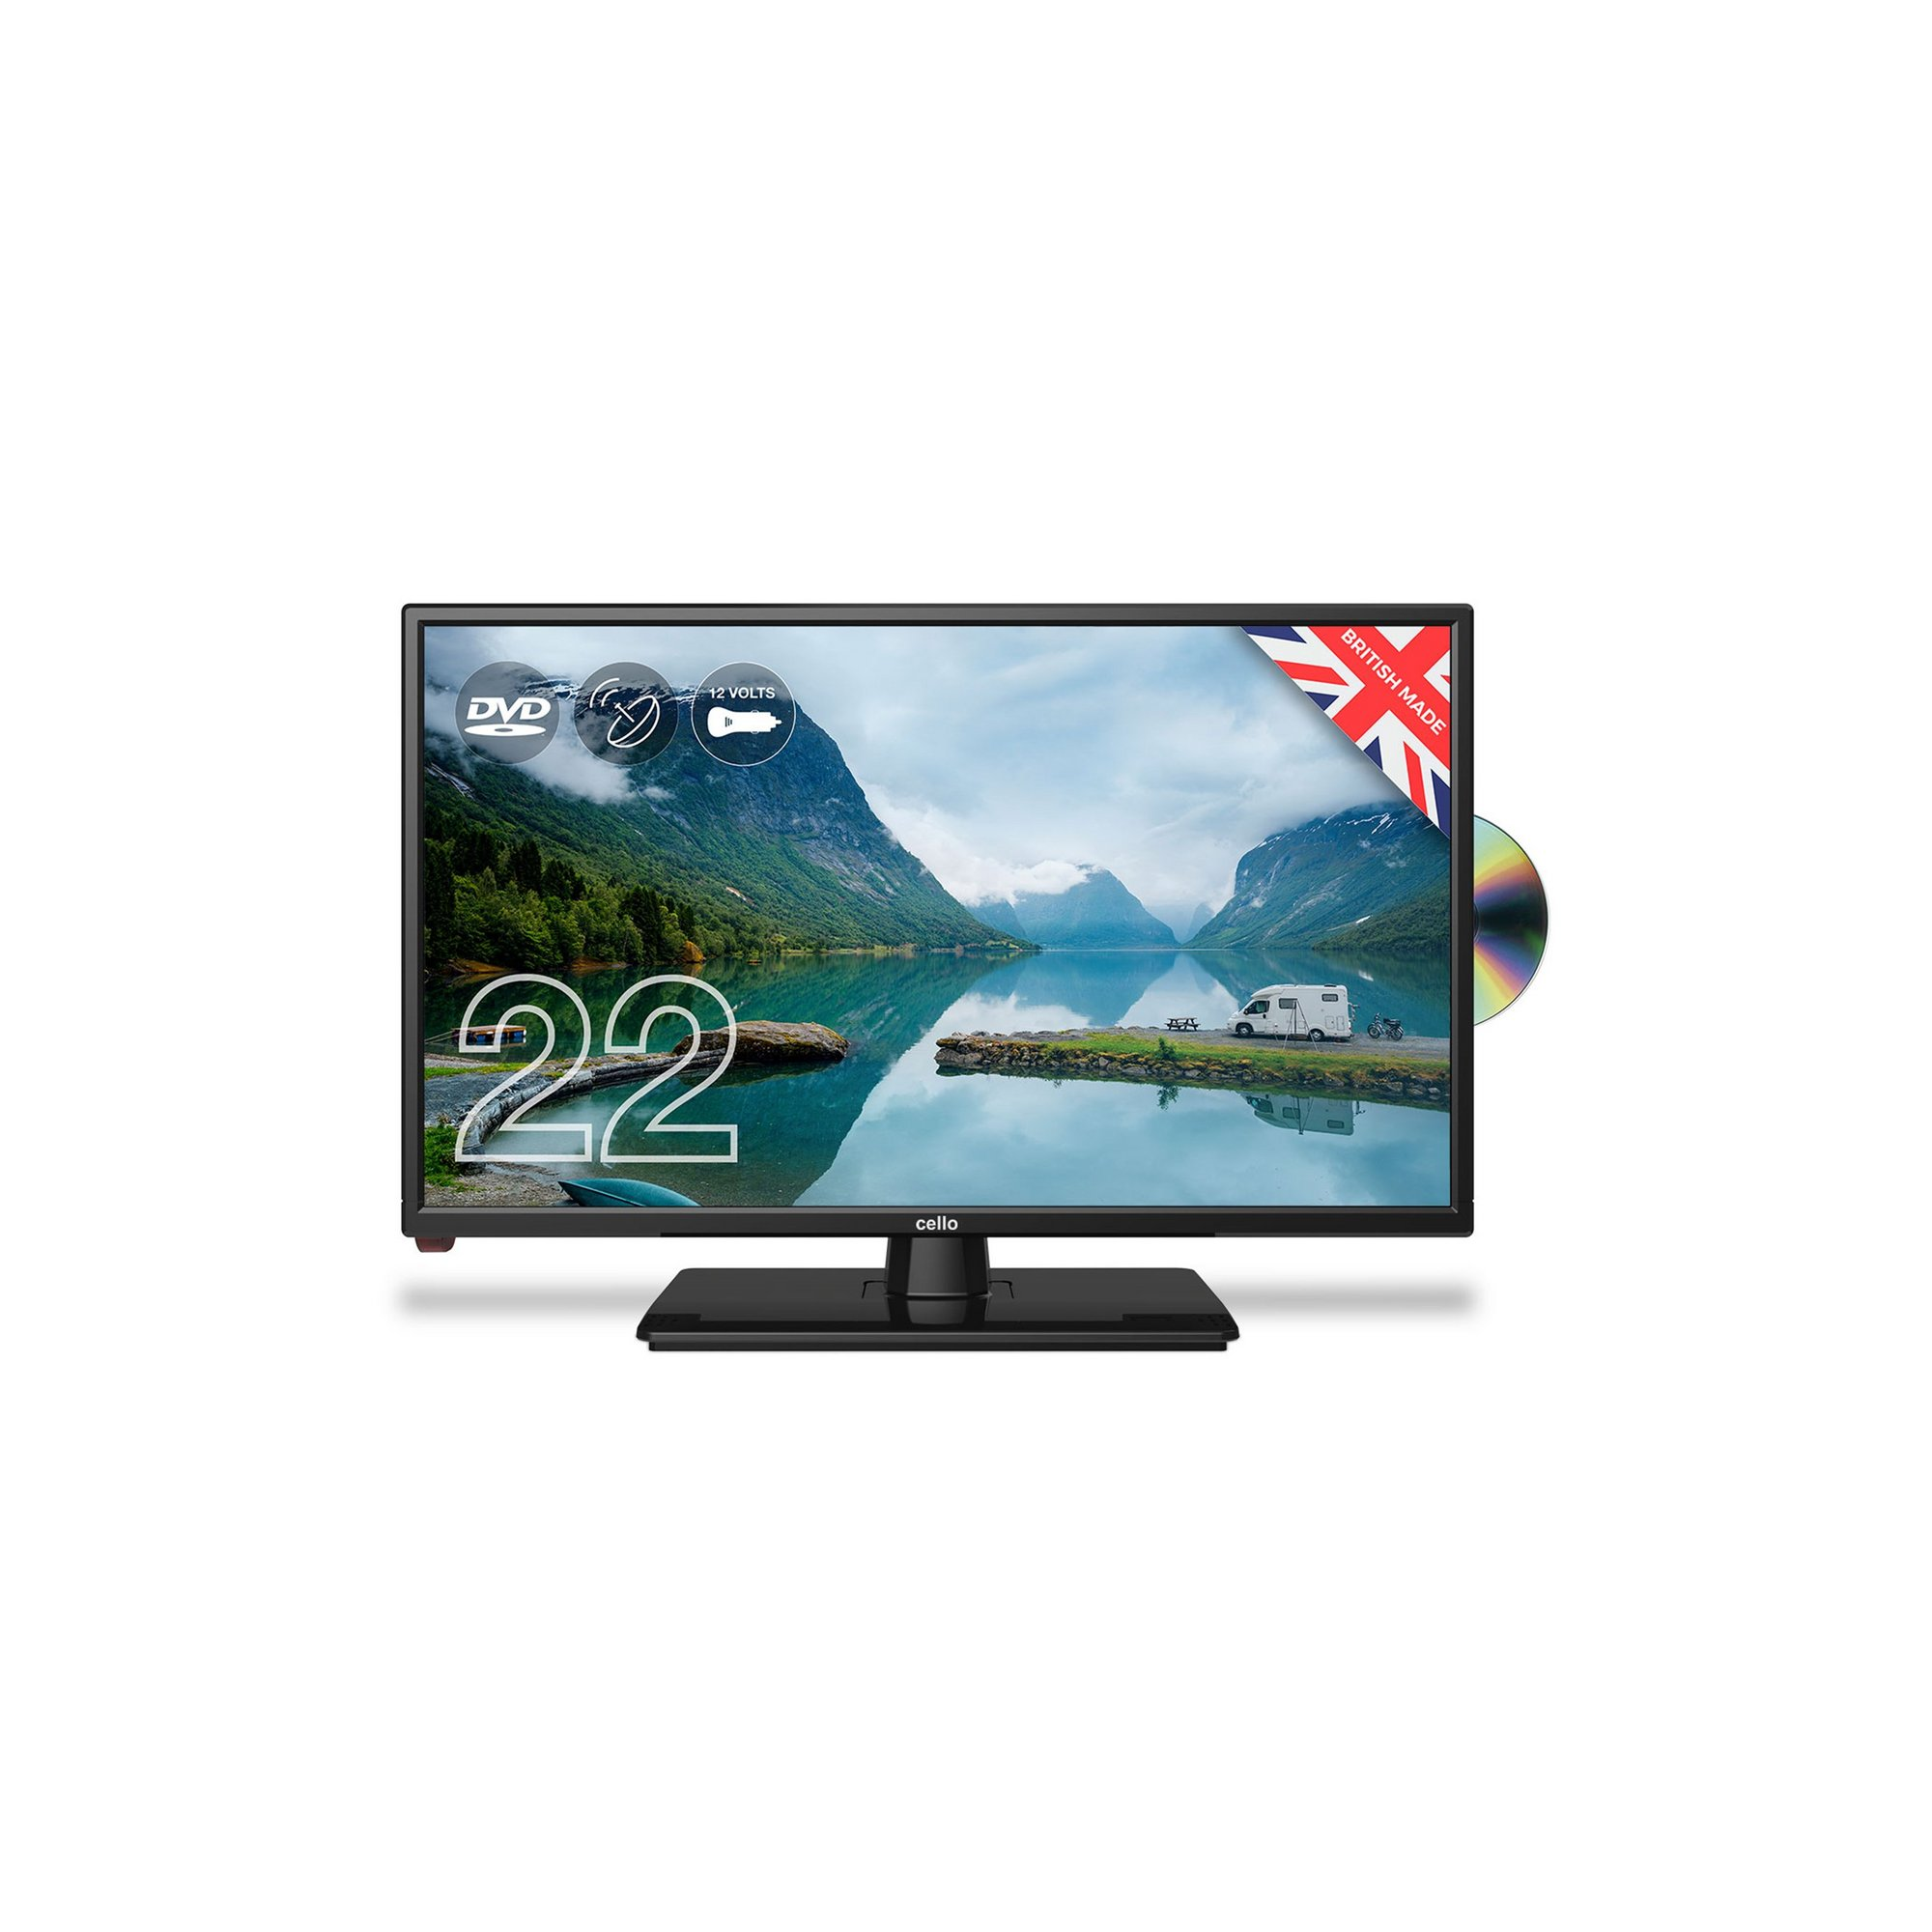 Image of Cello 22 Inch C2220FMTR Full HD 12v Traveller TV with DVD Player